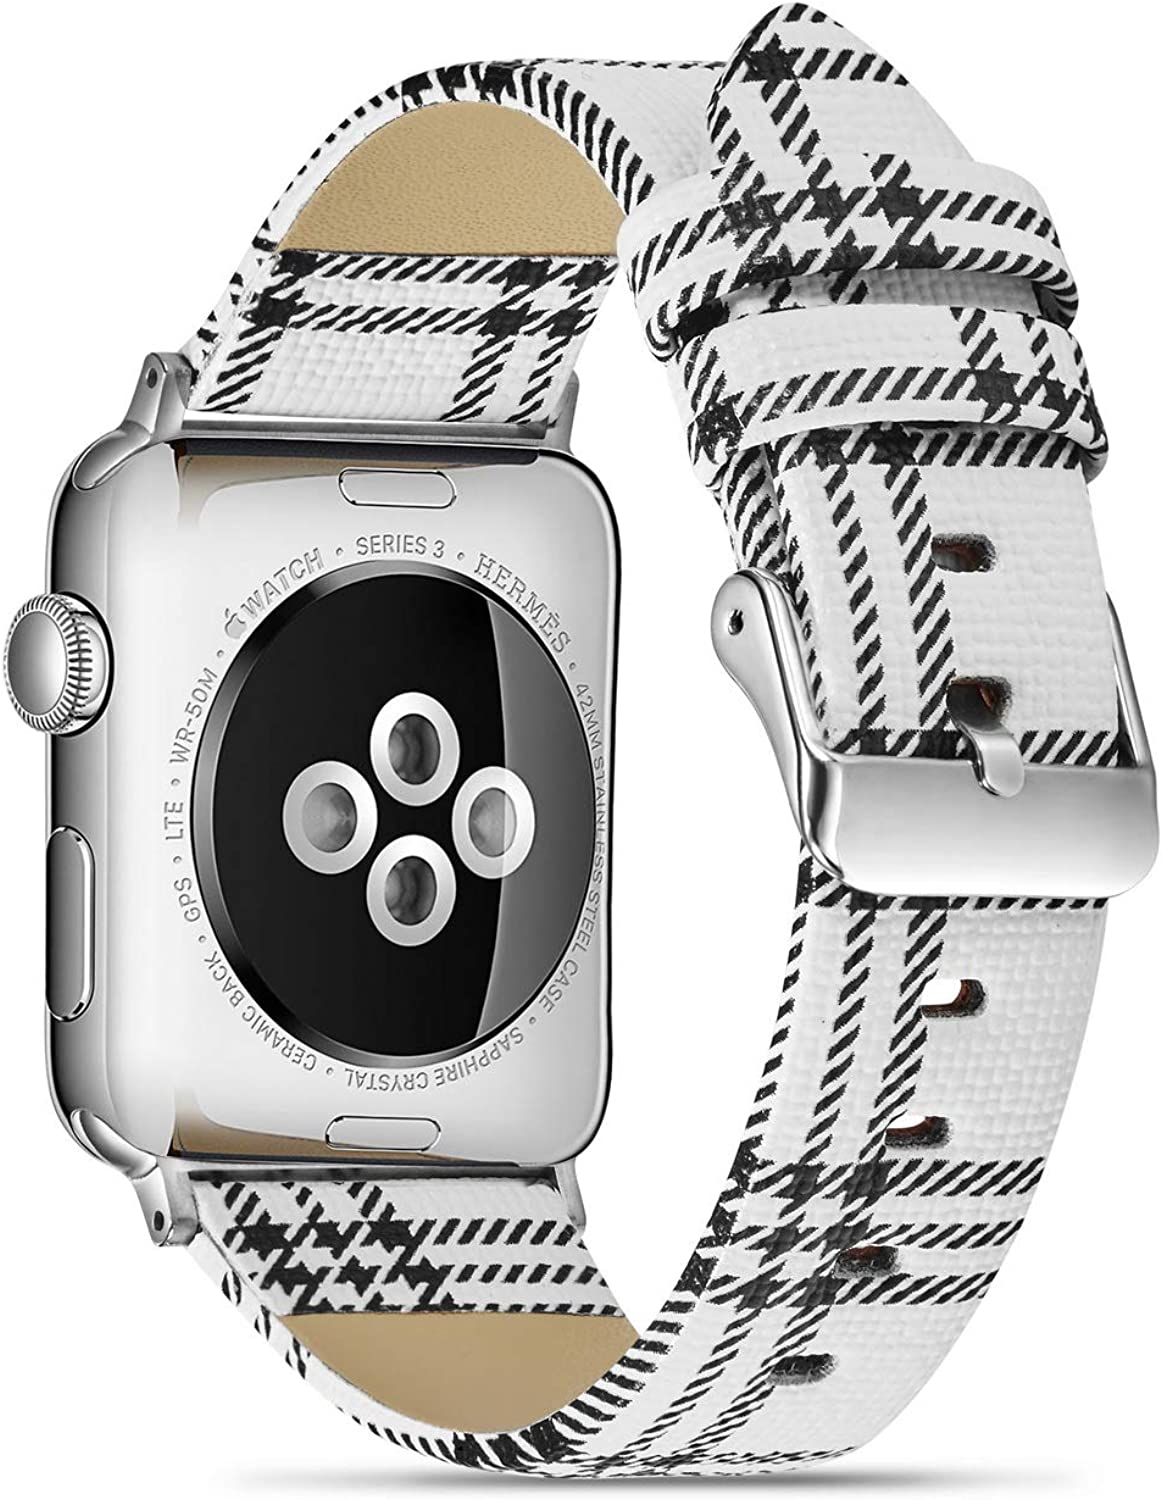 MeShow 44mm 42mm Plaid Tartan Style Replacement Strap Watch Band Wrist Band with Silver Metal Adapter Compatible for Apple Watch Series SE/6/5/4/3/2/1 (P)(Not for iwatch 38mm/40mm)